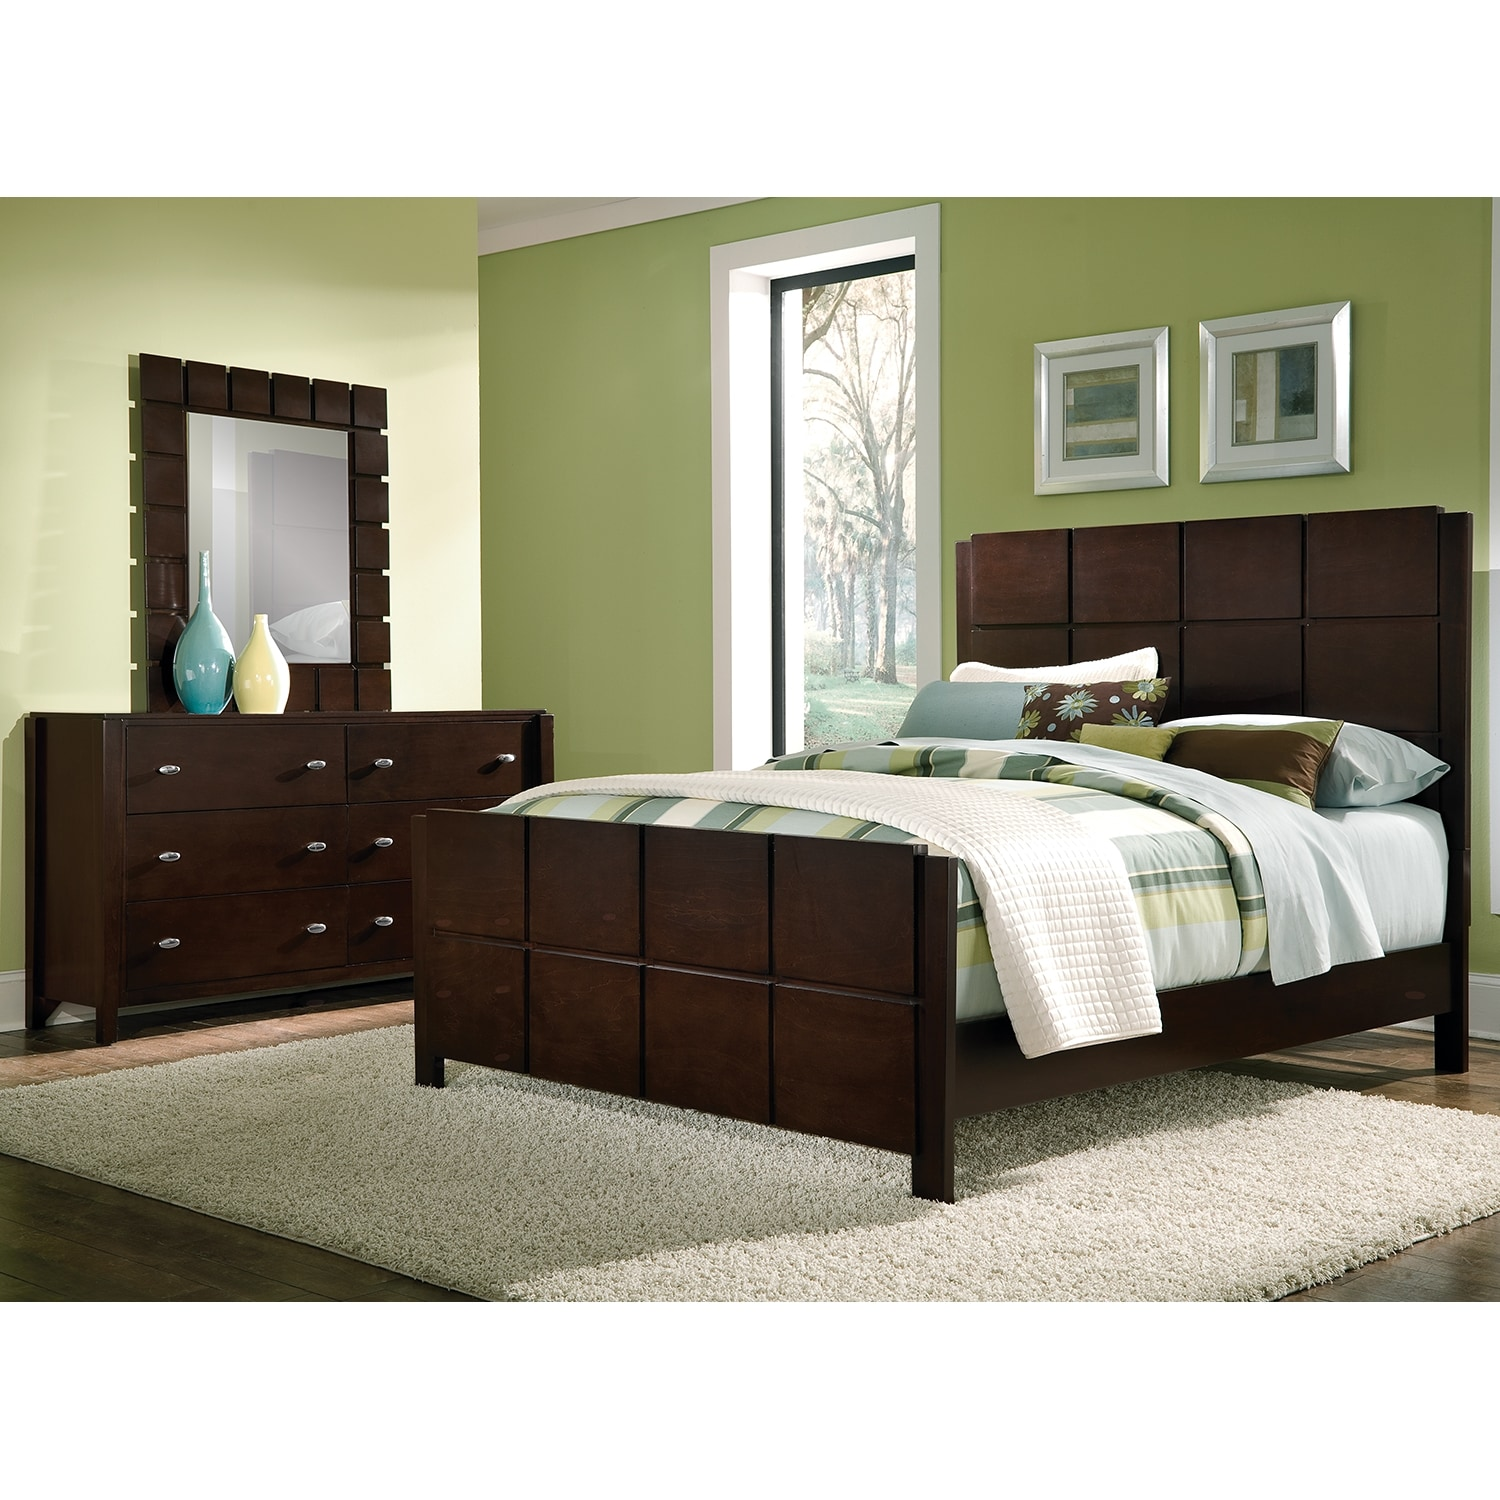 Mosaic 5 pc queen bedroom american signature furniture for Furniture bedroom sets